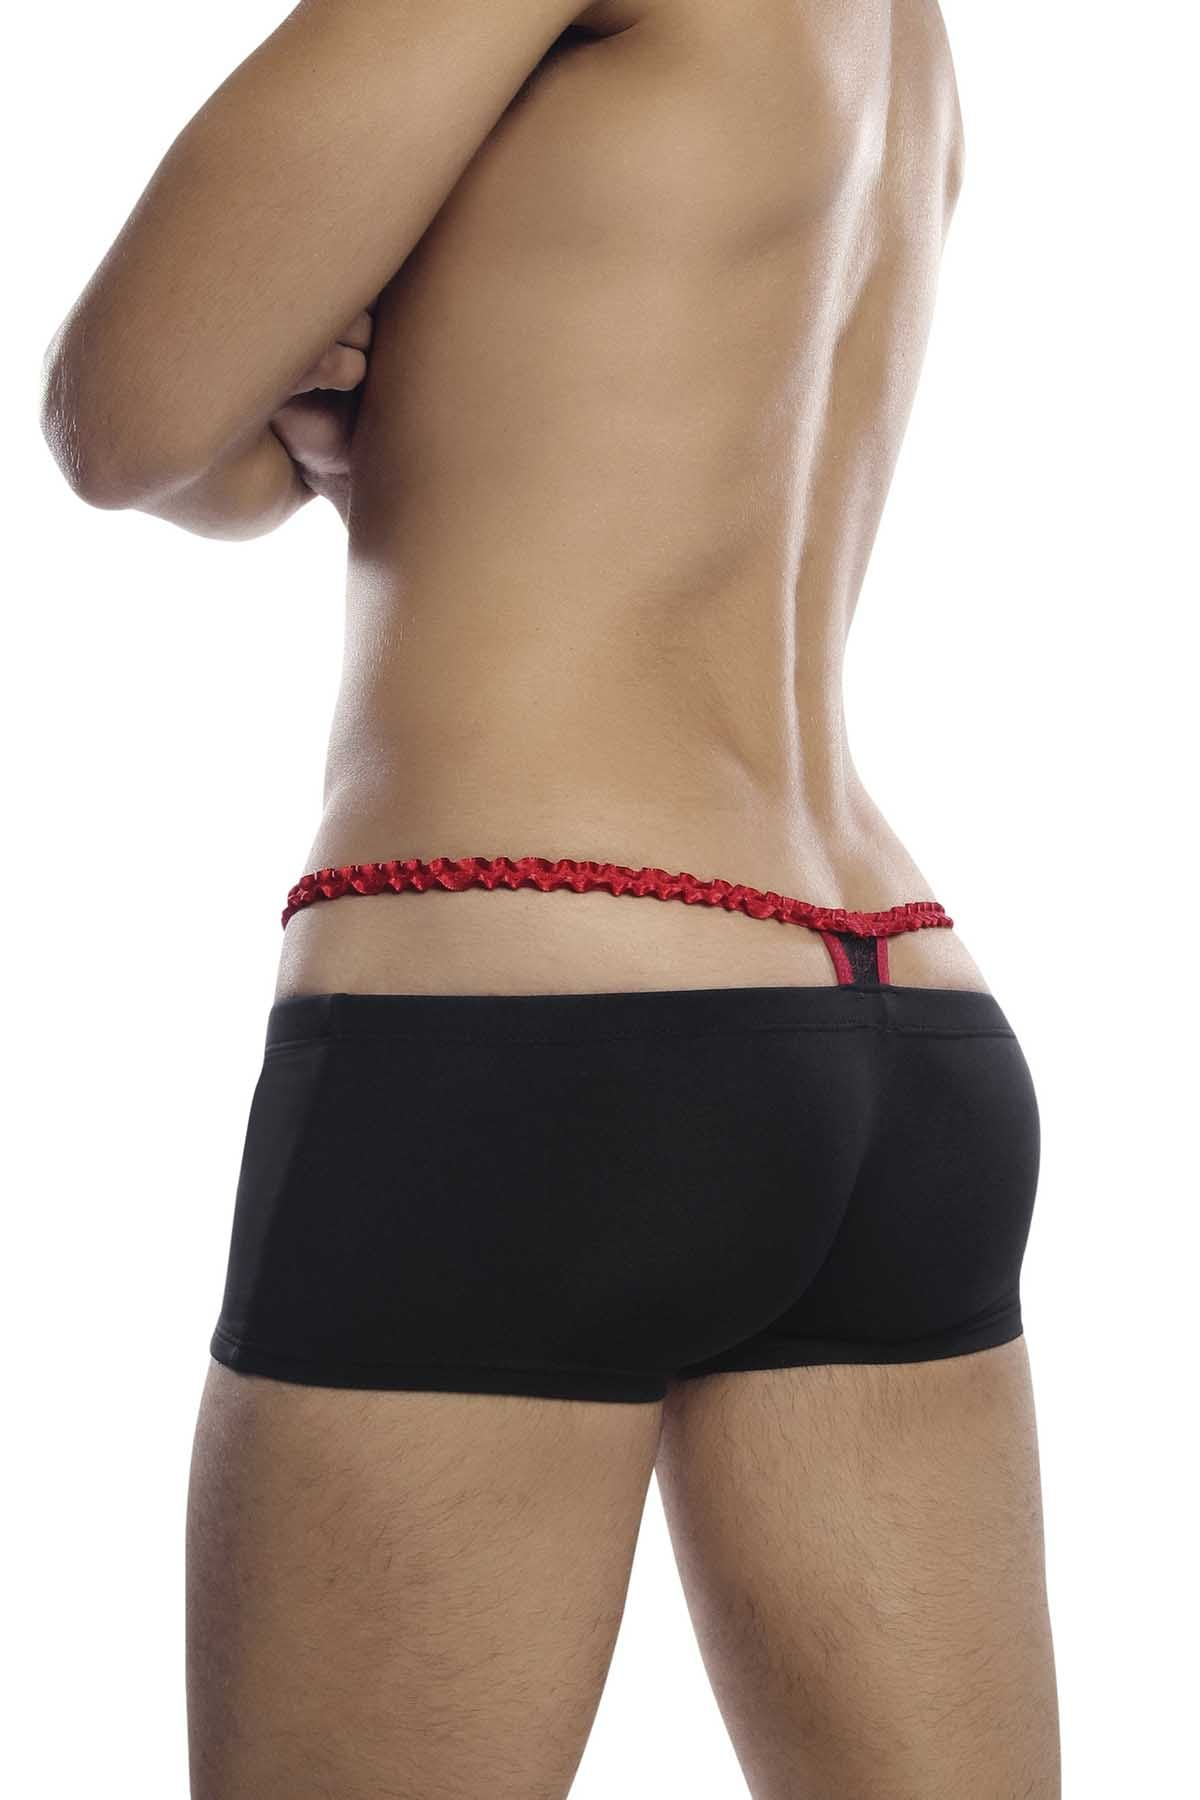 PetitQ Black & Red Thong Boxer Trunk